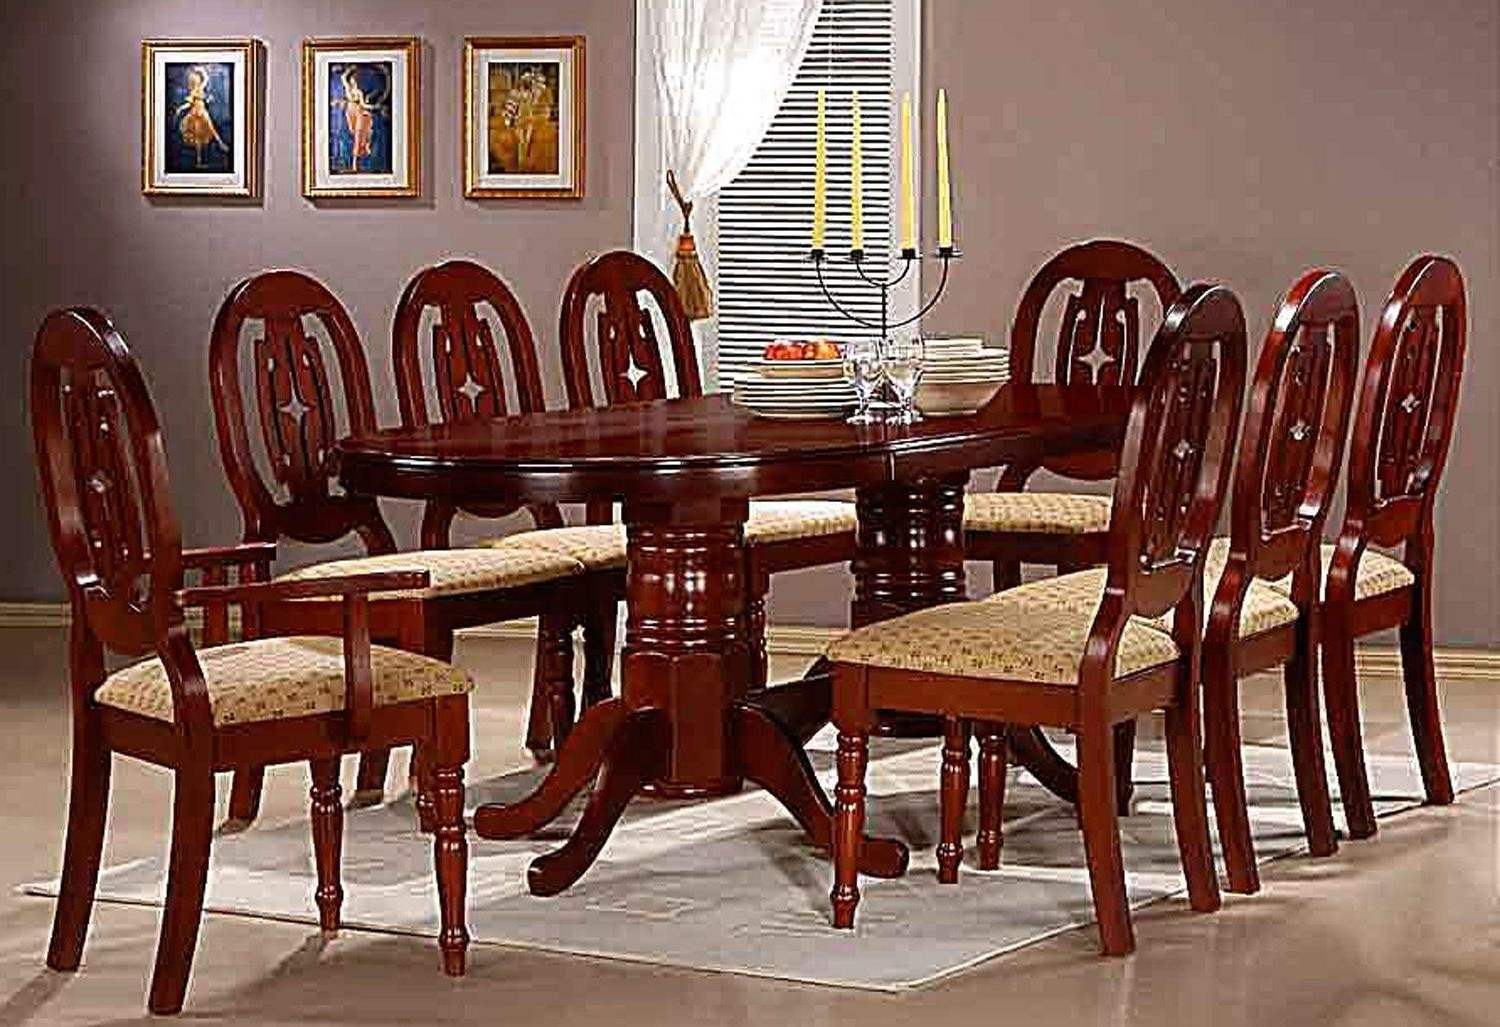 2018 8 Seater Dining Tables pertaining to Wooden 8 Seater Dinning Table Set Glow Finish With Chairs. – Gunjan